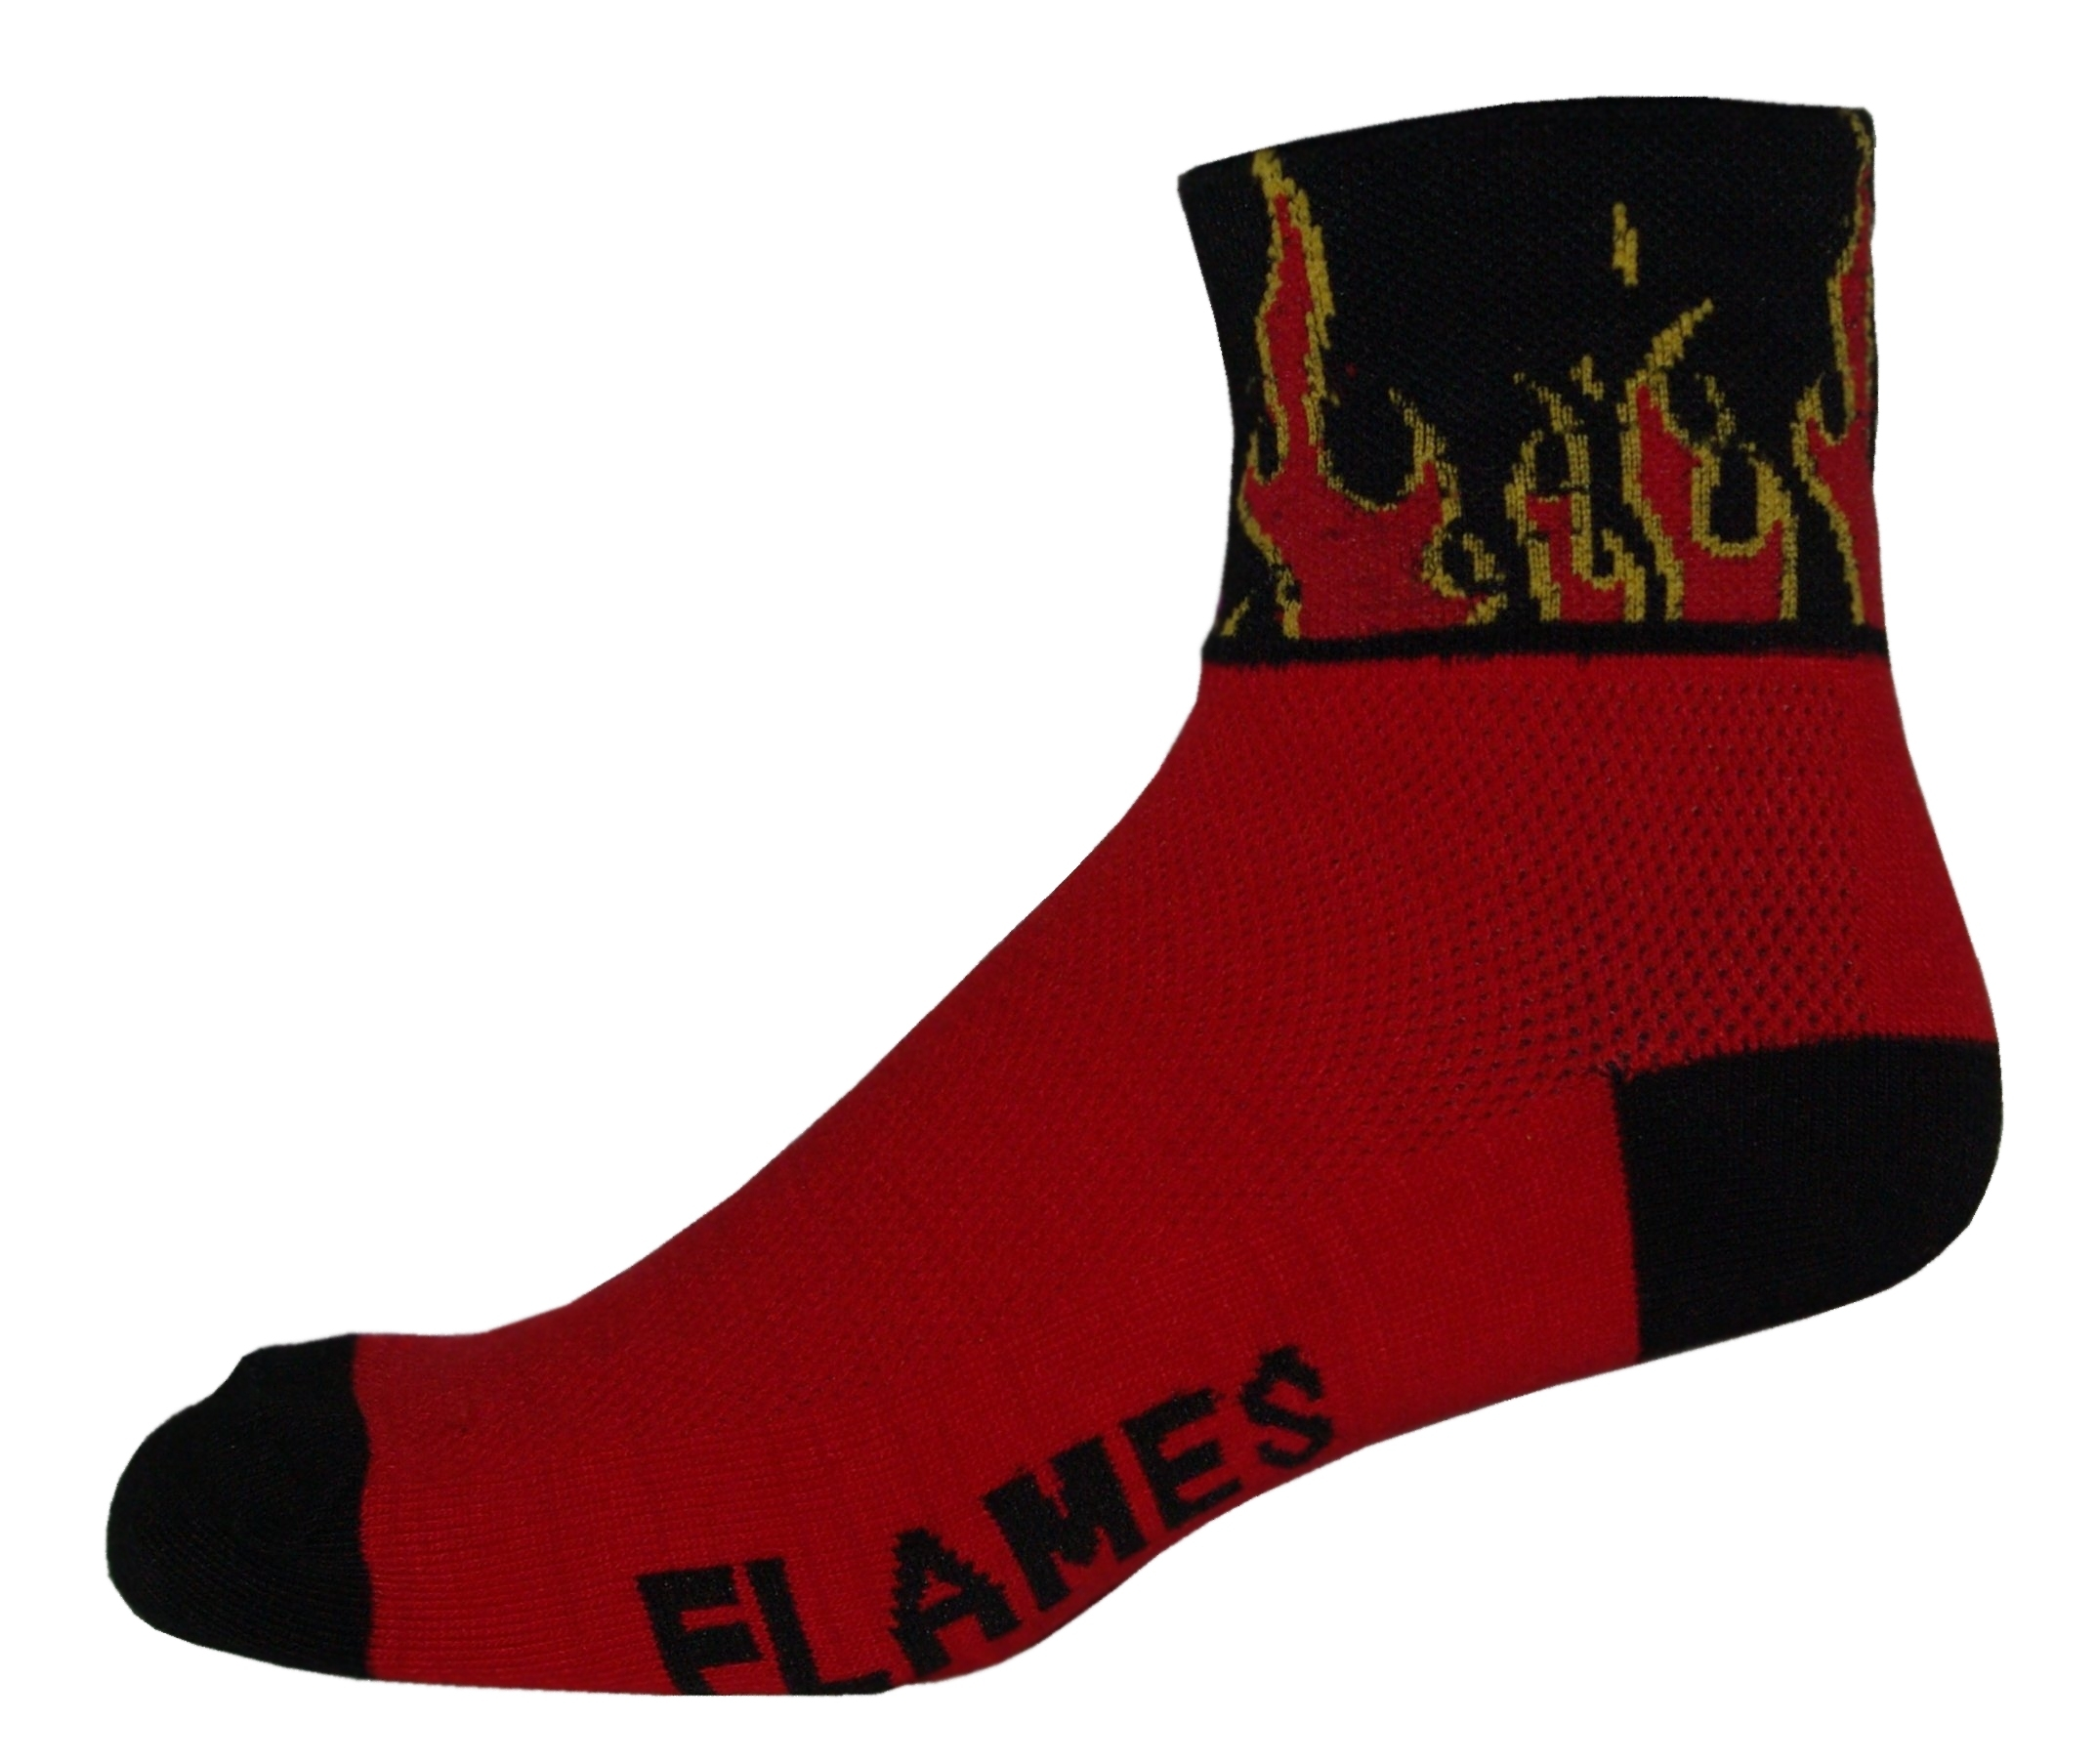 NLZ Flames Cycling Socks